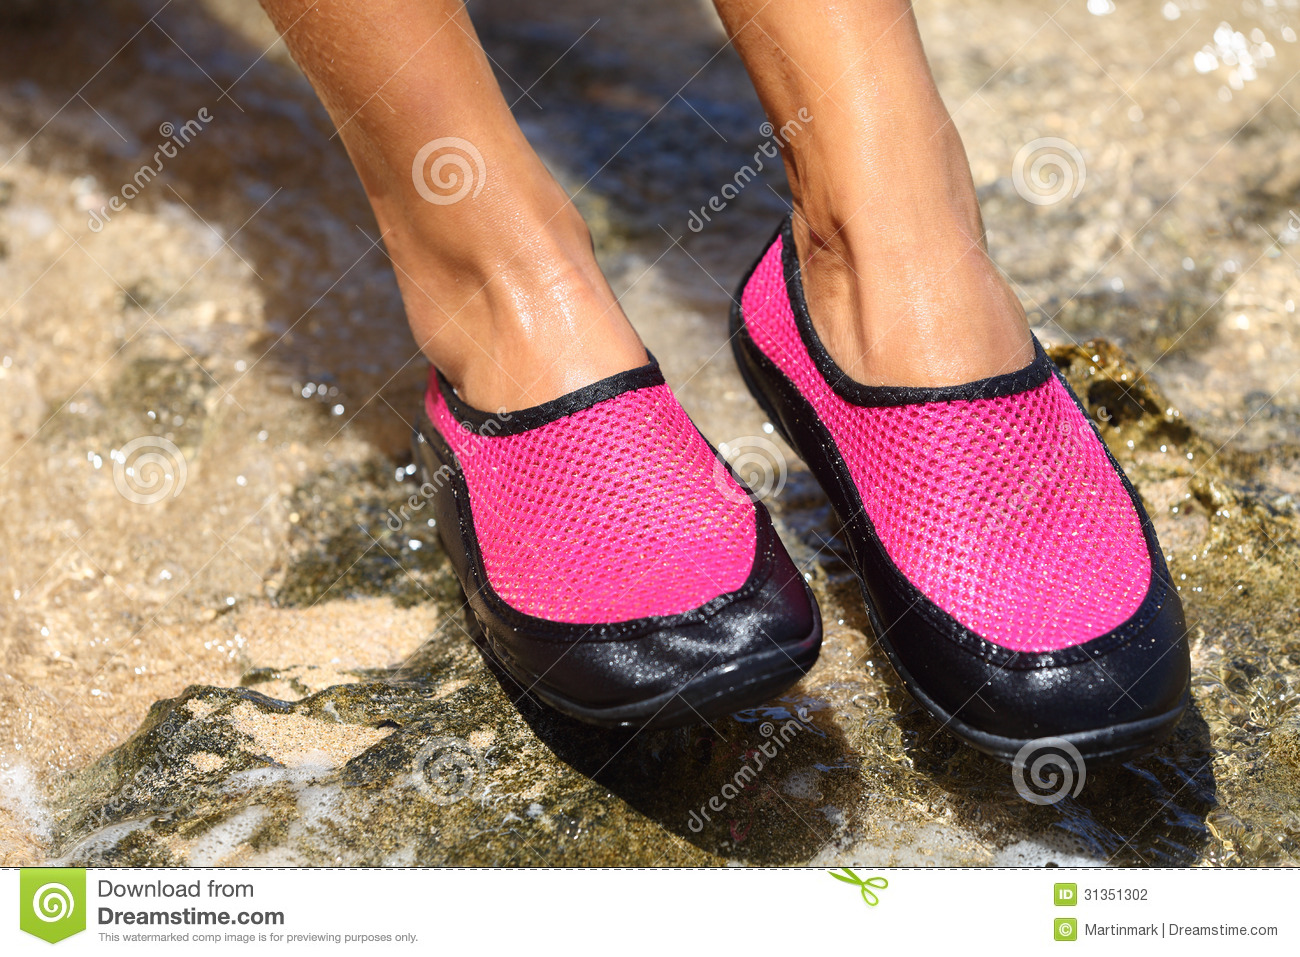 Water shoes   swim shoe in Pink neoprene on rocks in water on beach.  Closeup detail of the feet of a woman wearing bright pink neoprene water  shoes standing ... 40952efeb448